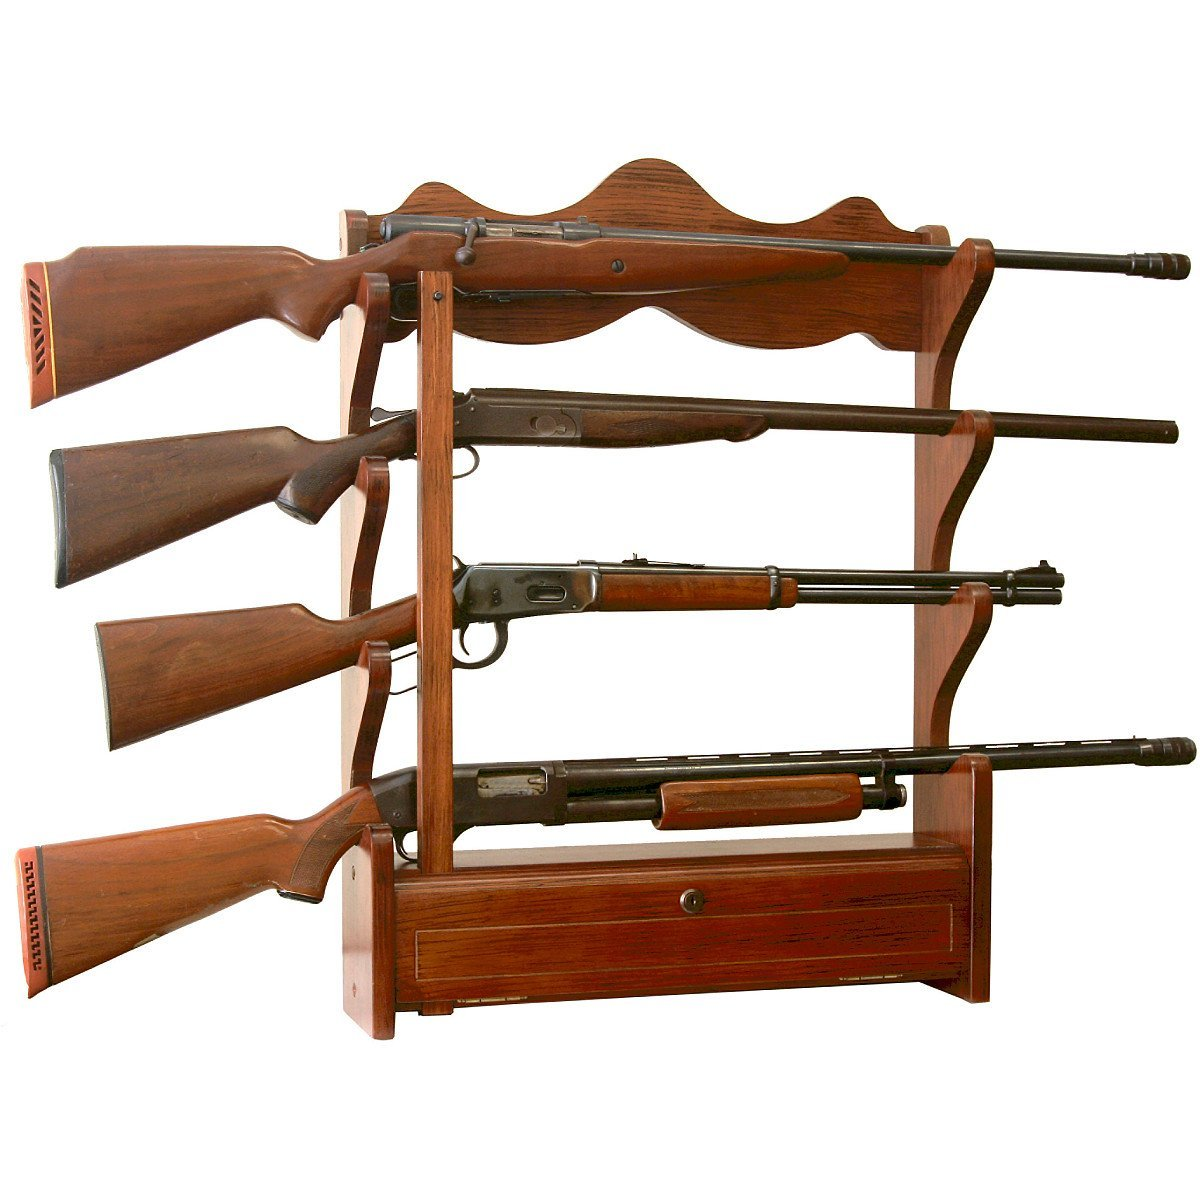 manufactured rifle rack